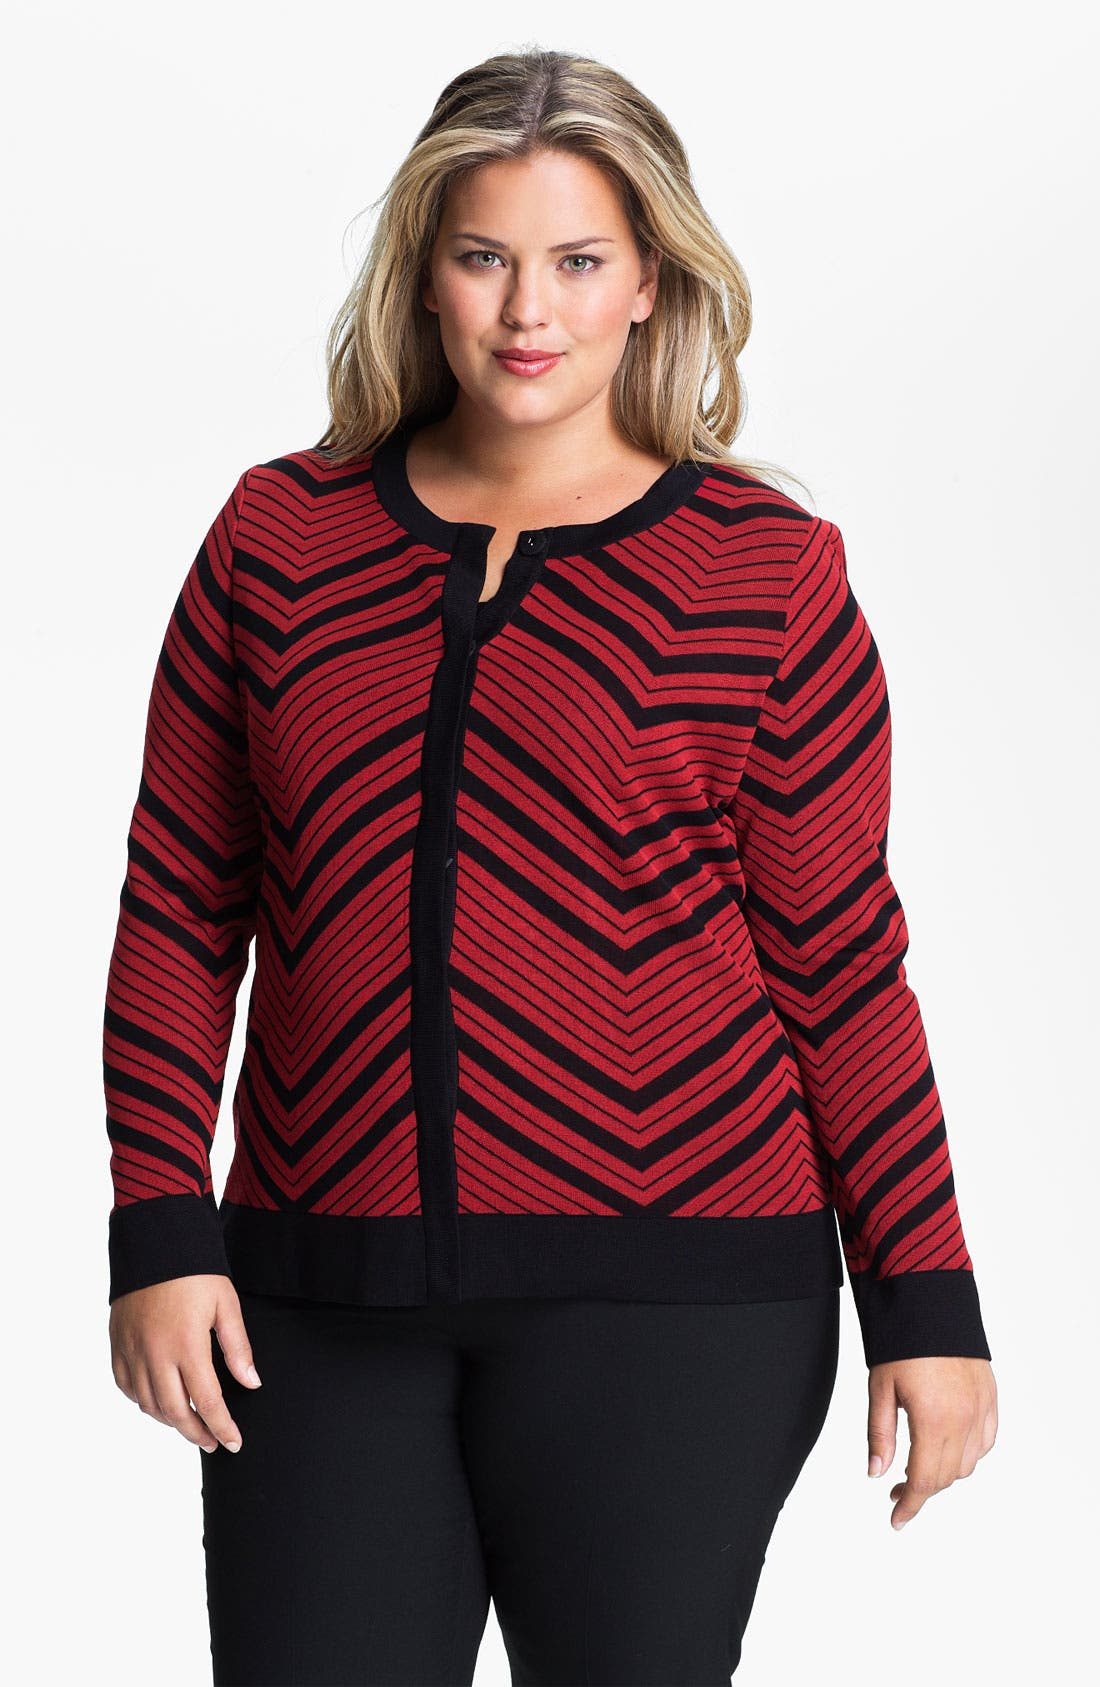 Alternate Image 1 Selected - Exclusively Misook Jewel Neck Herringbone Pattern Jacket (Plus)